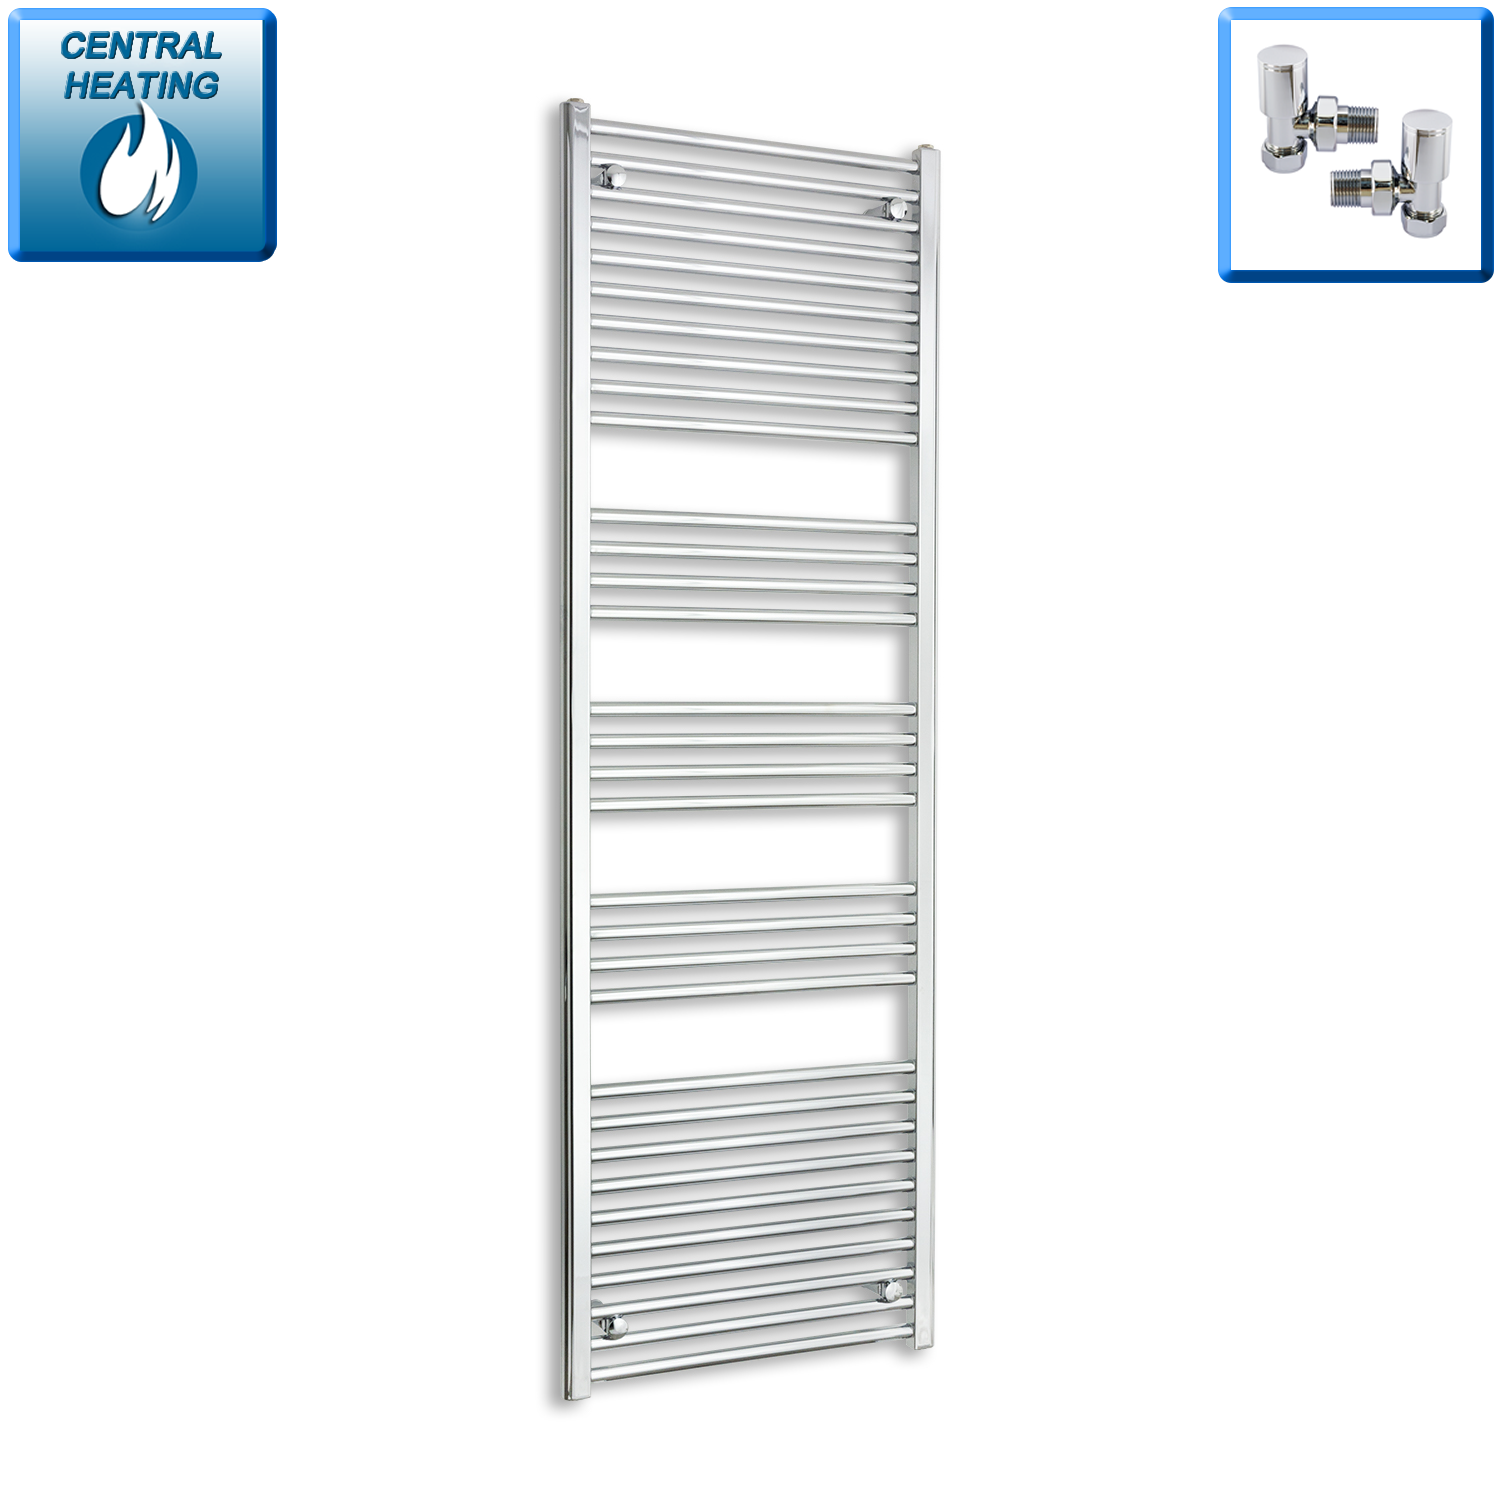 600mm Wide 1800mm High Straight Chrome Heated Towel Rail Radiator HTR,With Angled Valve